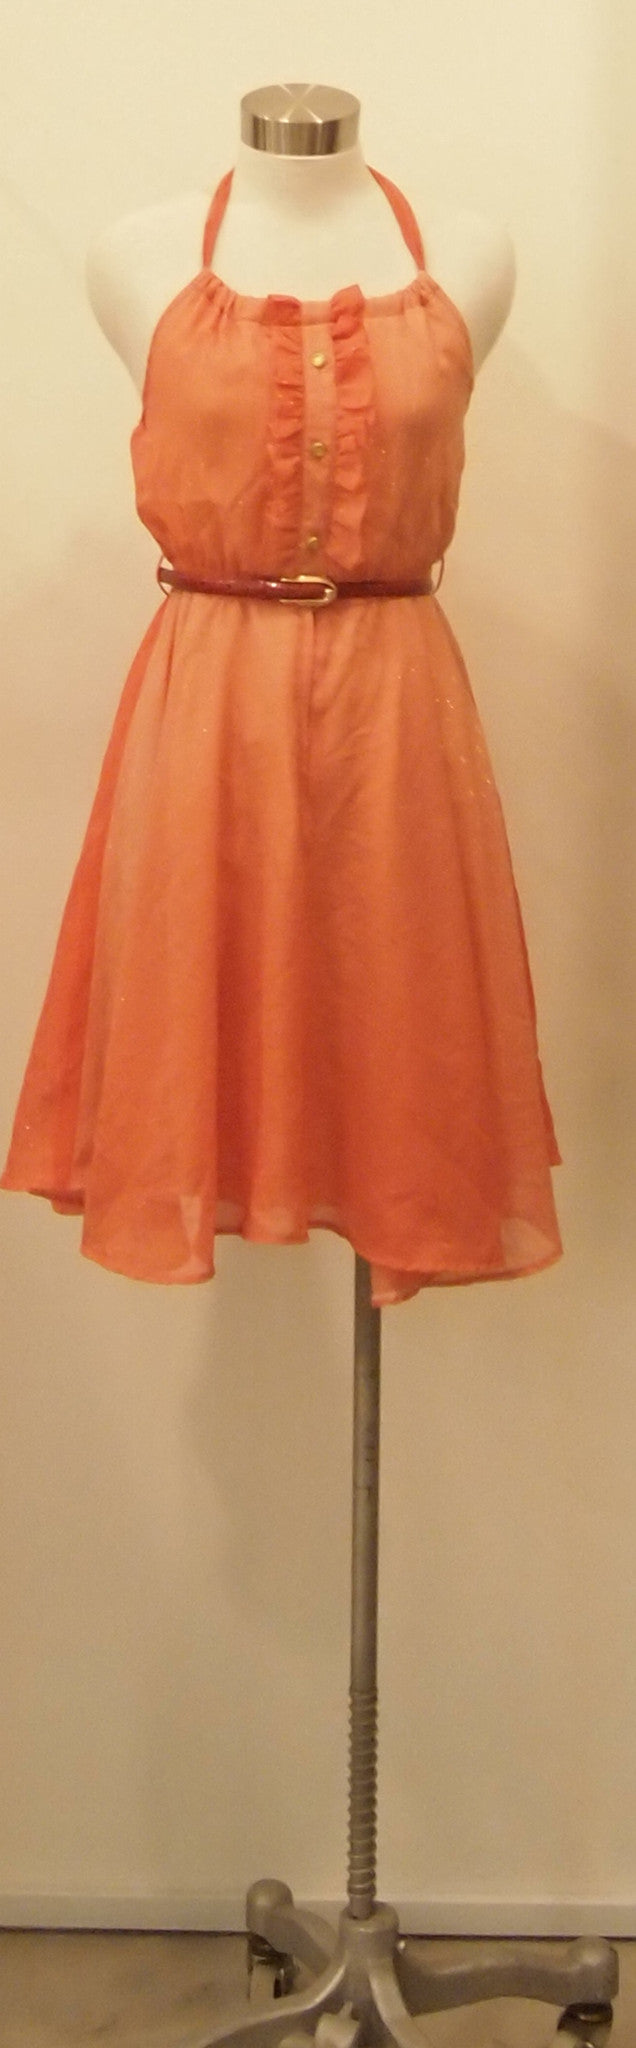 ORANGE FRILL RECONSTRUCTED VINTAGE DRESS